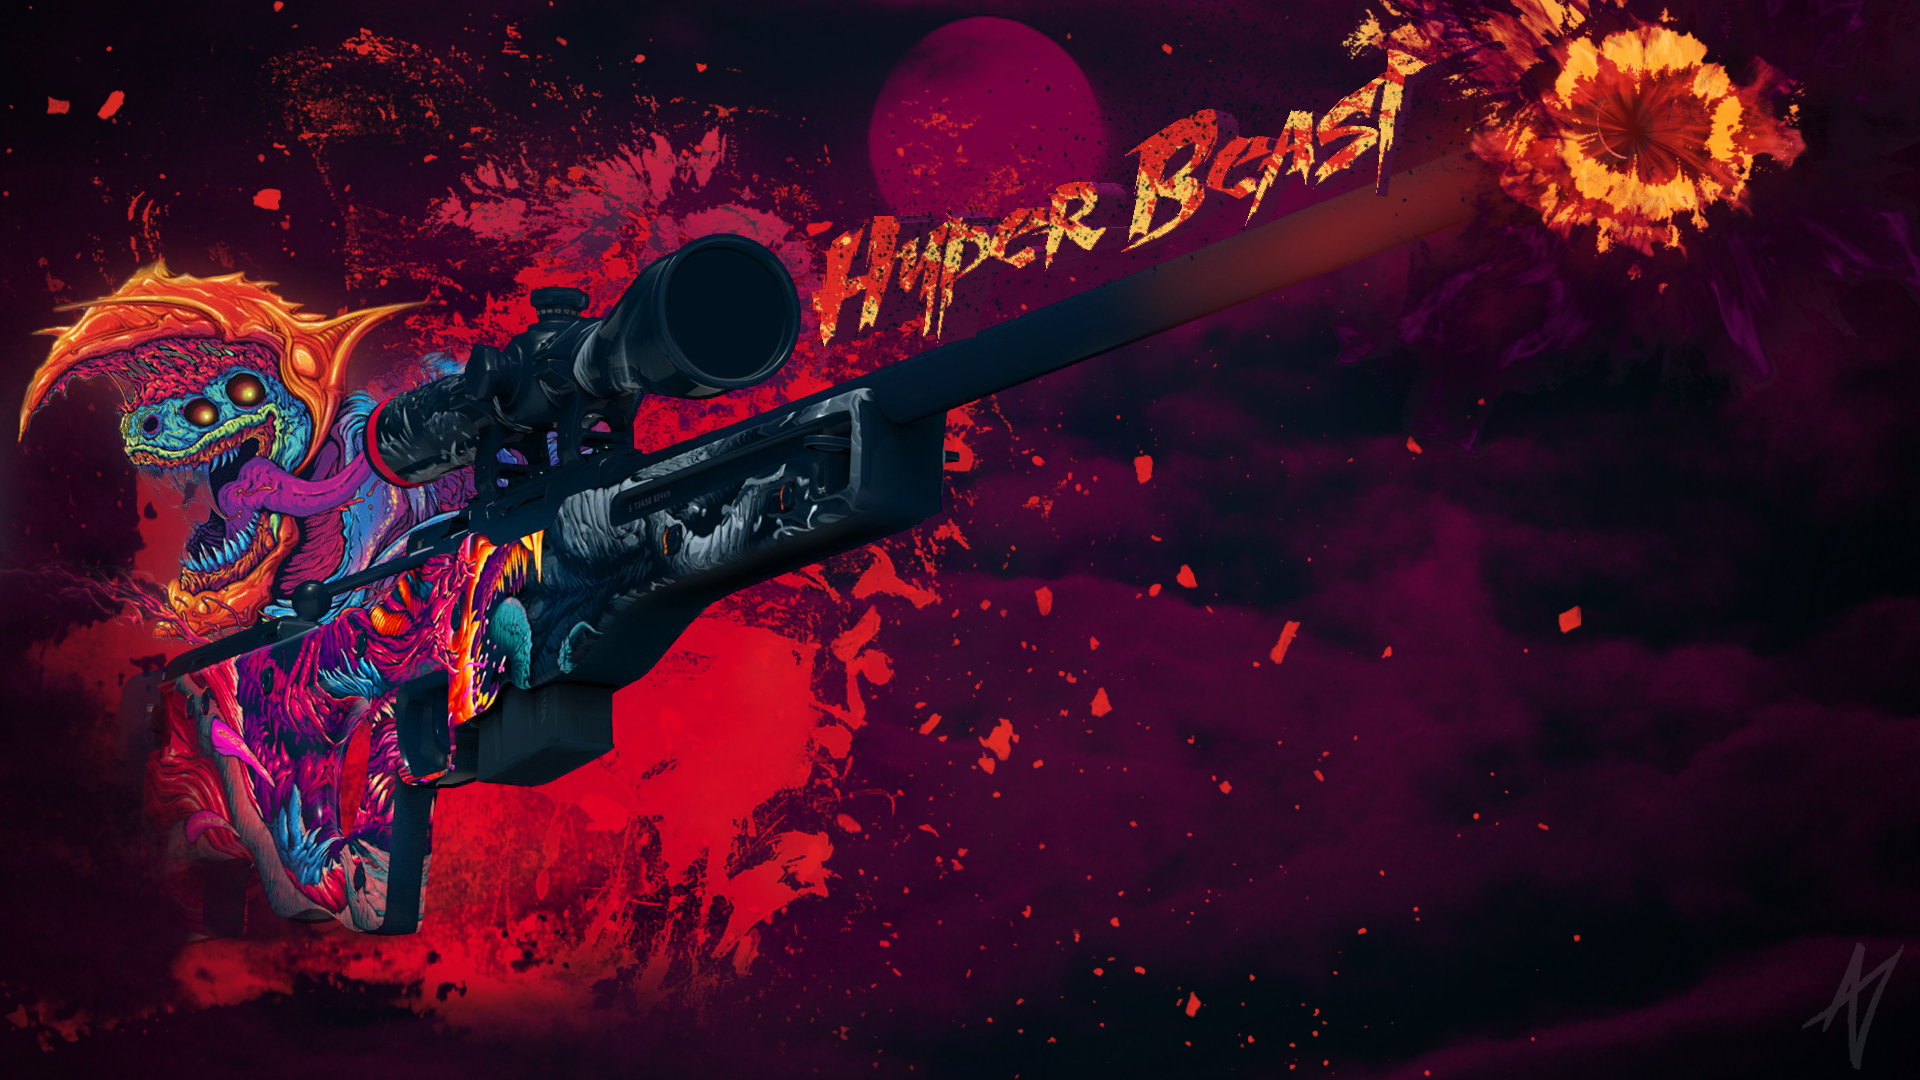 POWERED Hyper Beast by Dooudaaa on DeviantArt